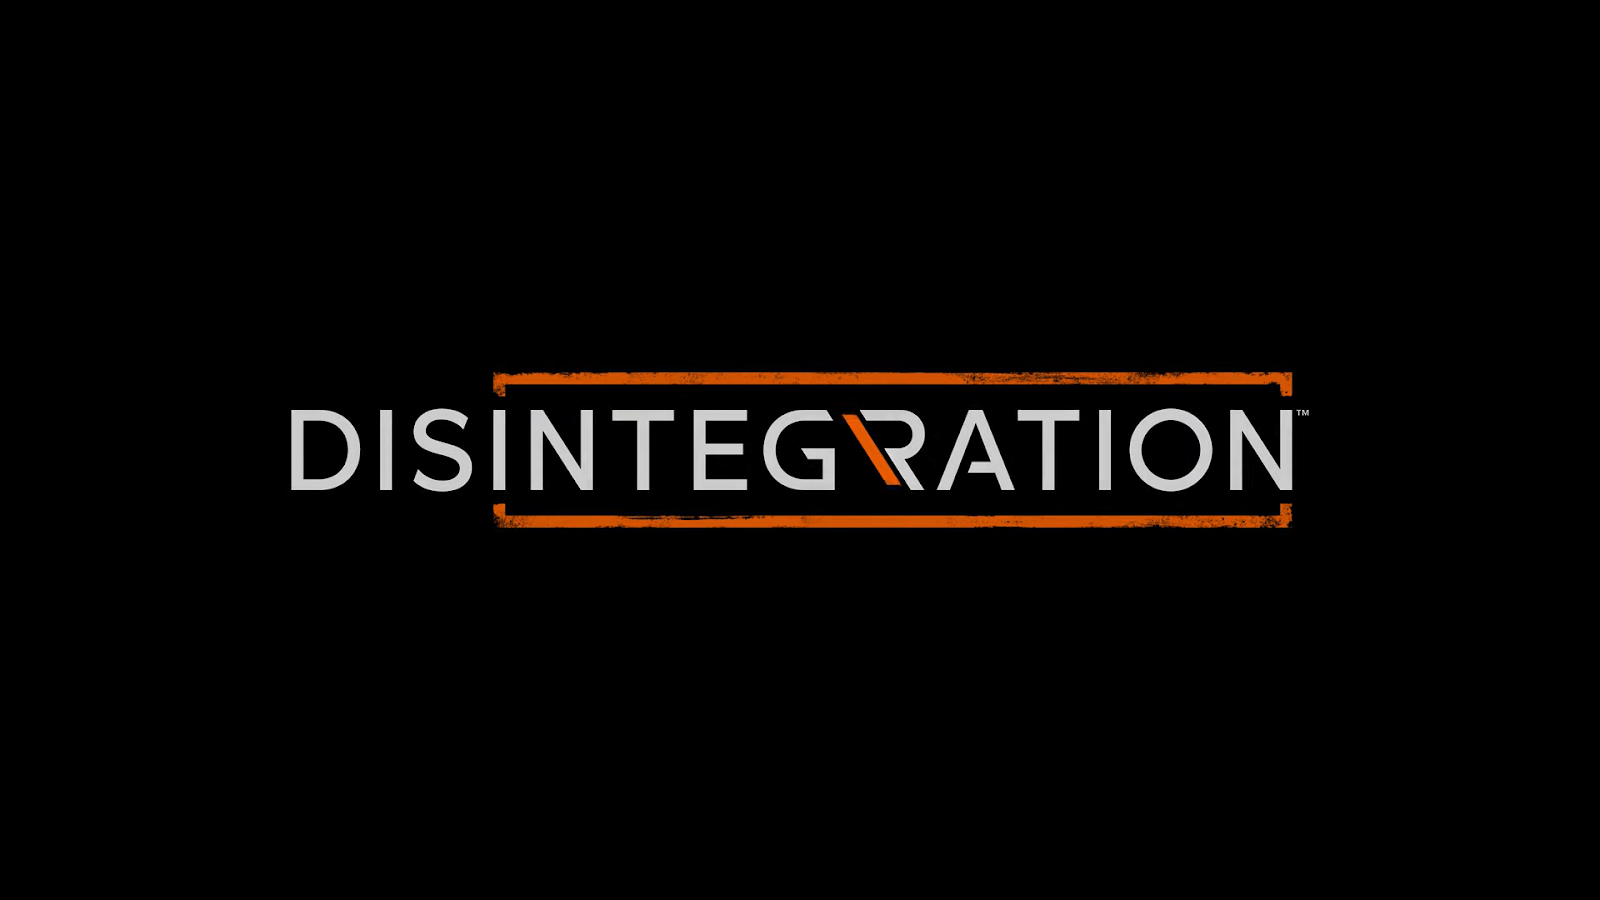 New Sci-Fi Game 'Disintegration' by Halo Co-Creator is Teased for a Gamescom Reveal - Bloody Disgusting